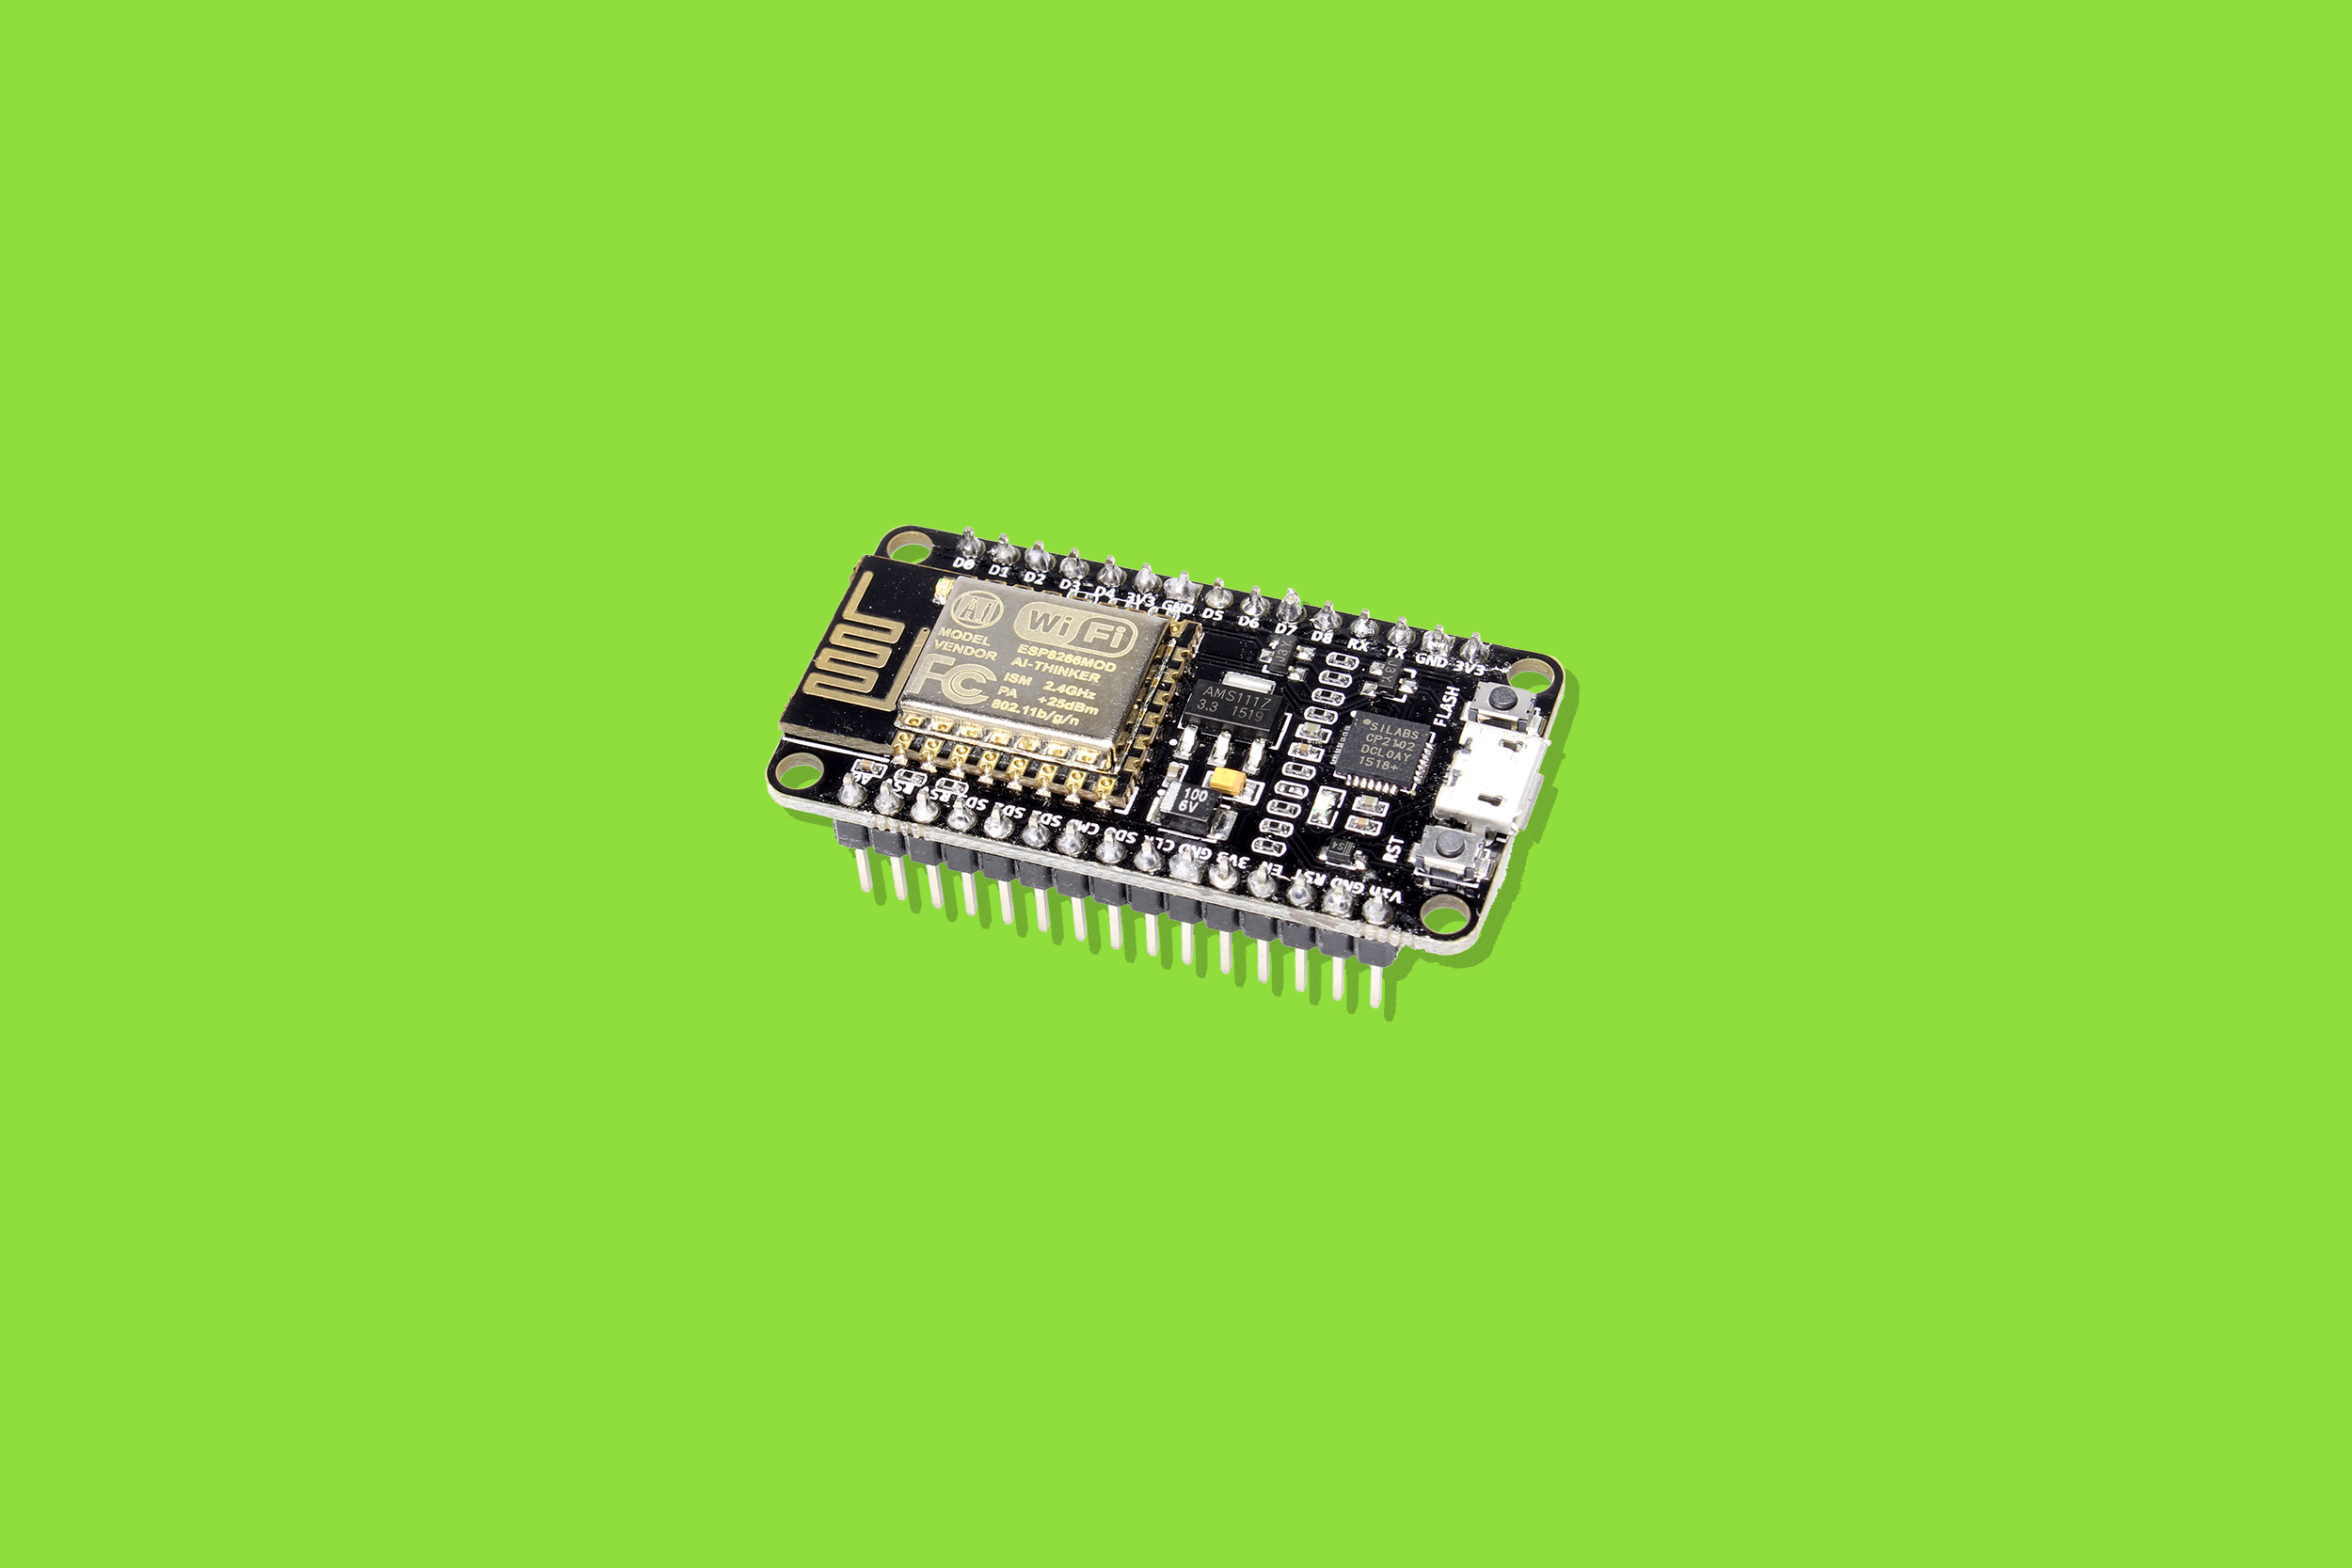 An ESP8266 microcontroller